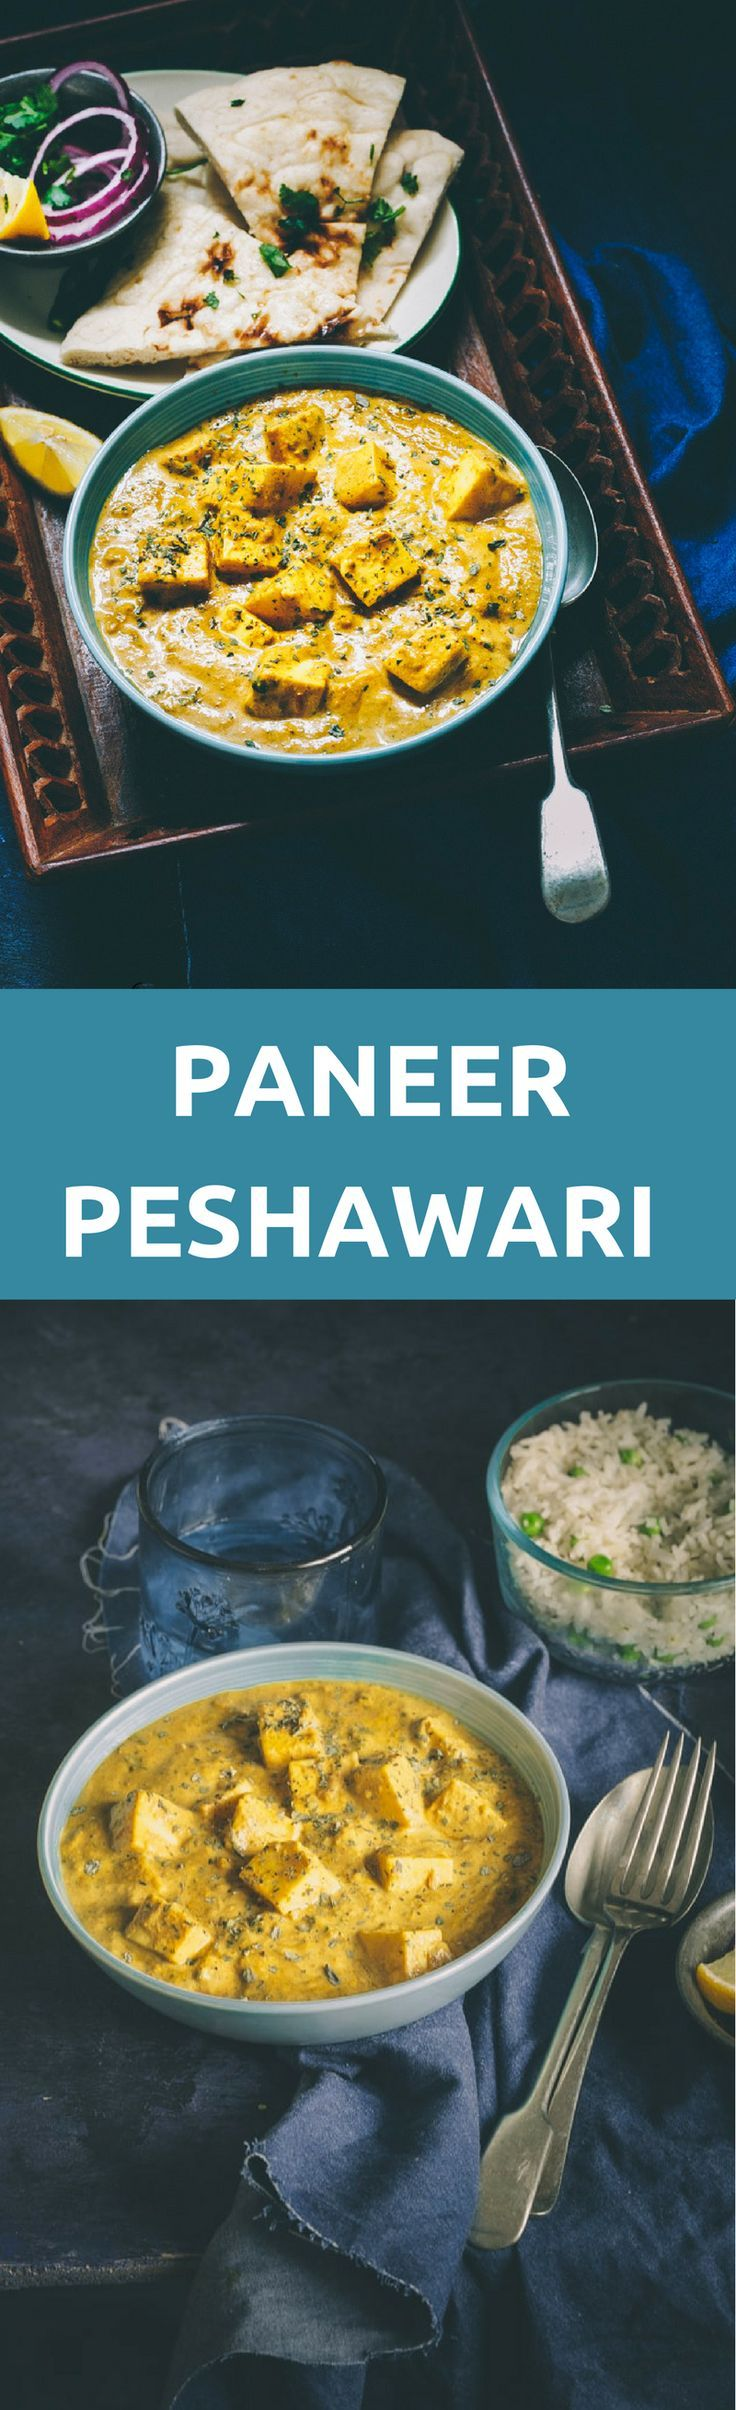 403 best indian cooking images on pinterest cooking food indian paneer peshawari is a delicious paneer curry that can be stirred up in 30 minutes forumfinder Gallery